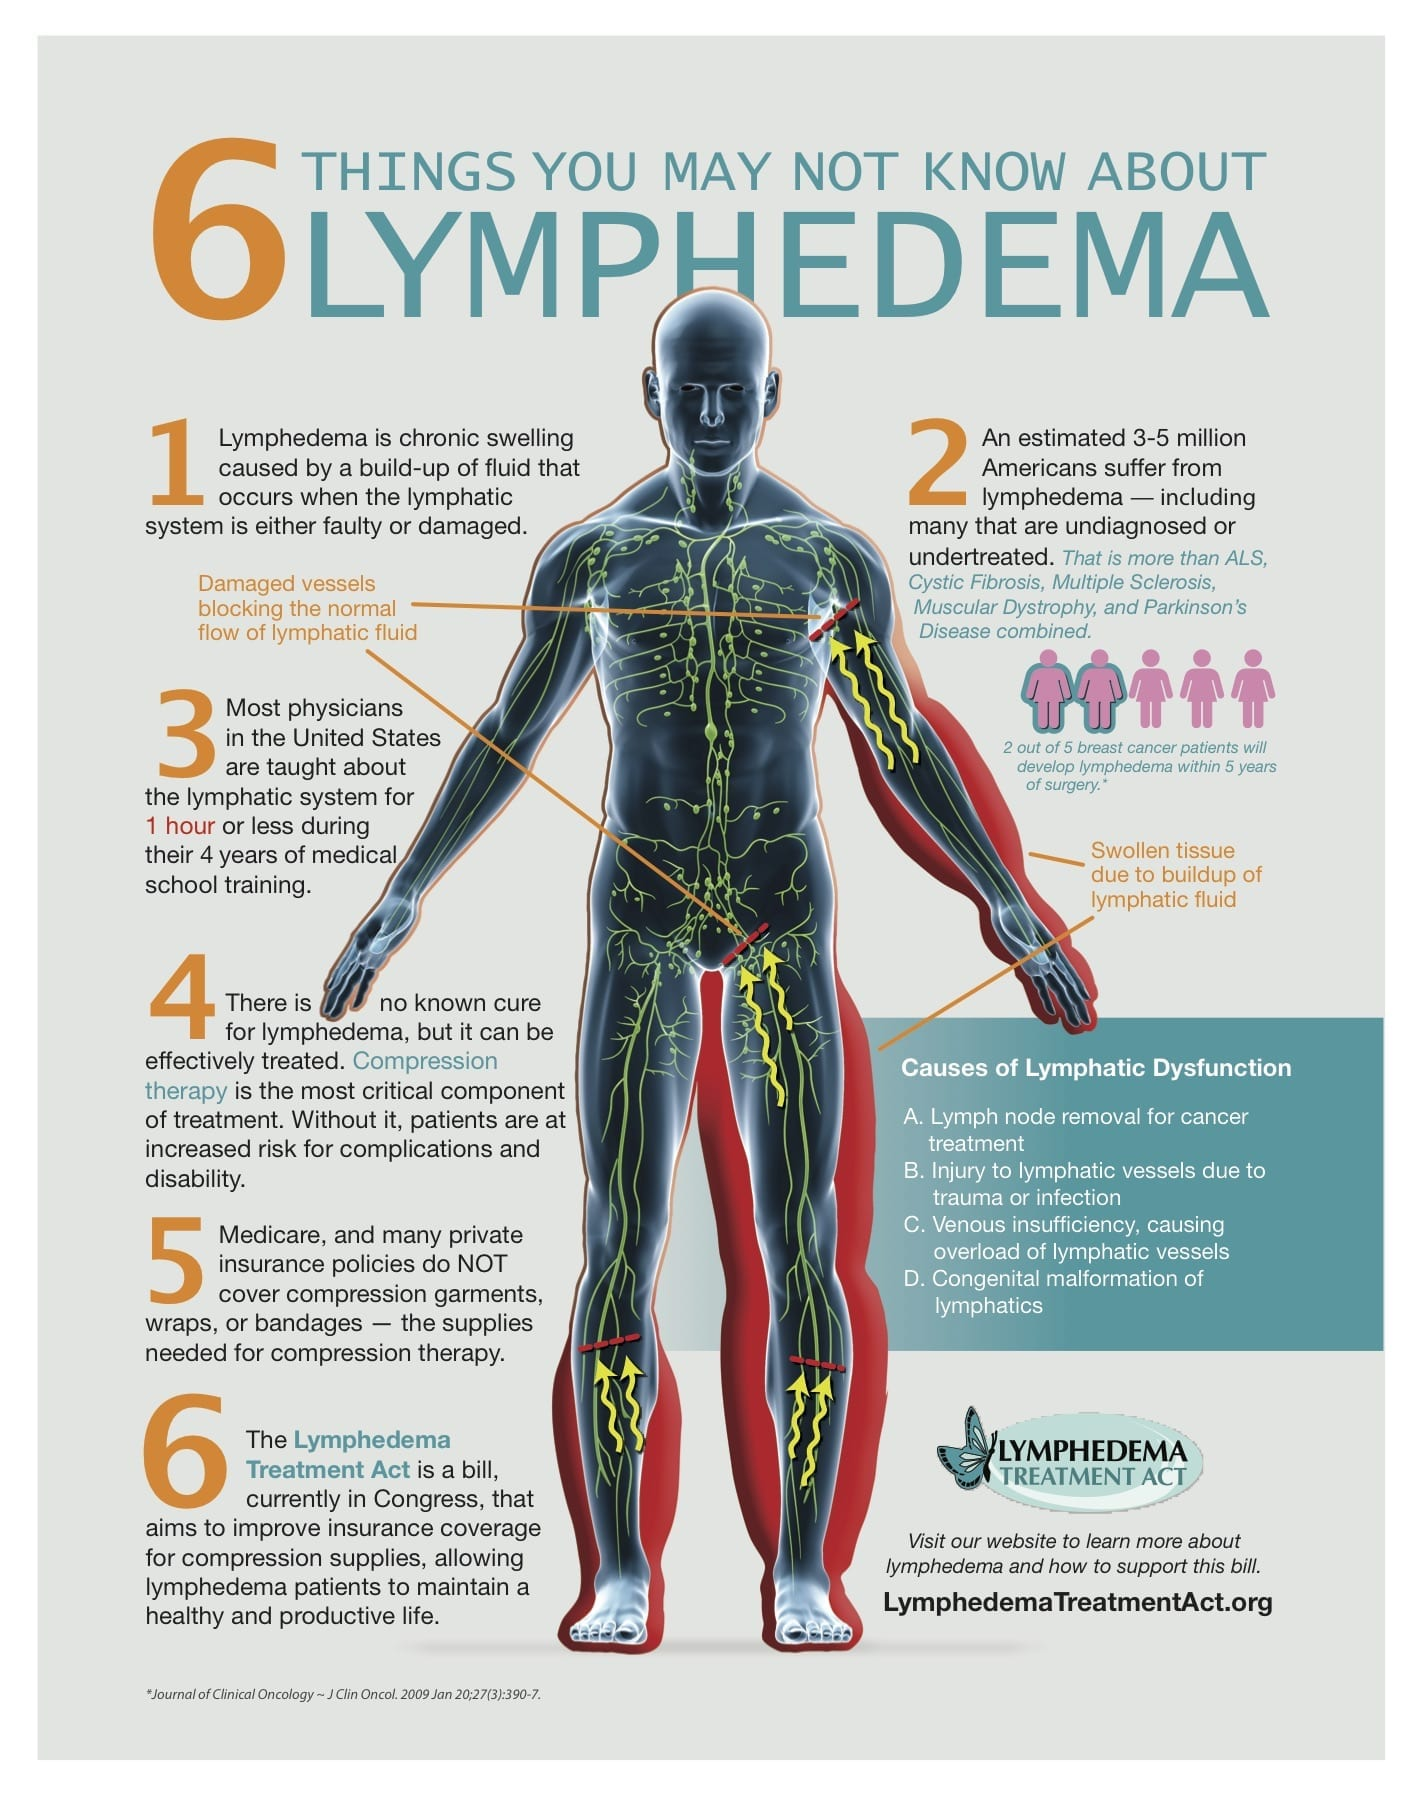 Lymphedema_Infographic_JPG